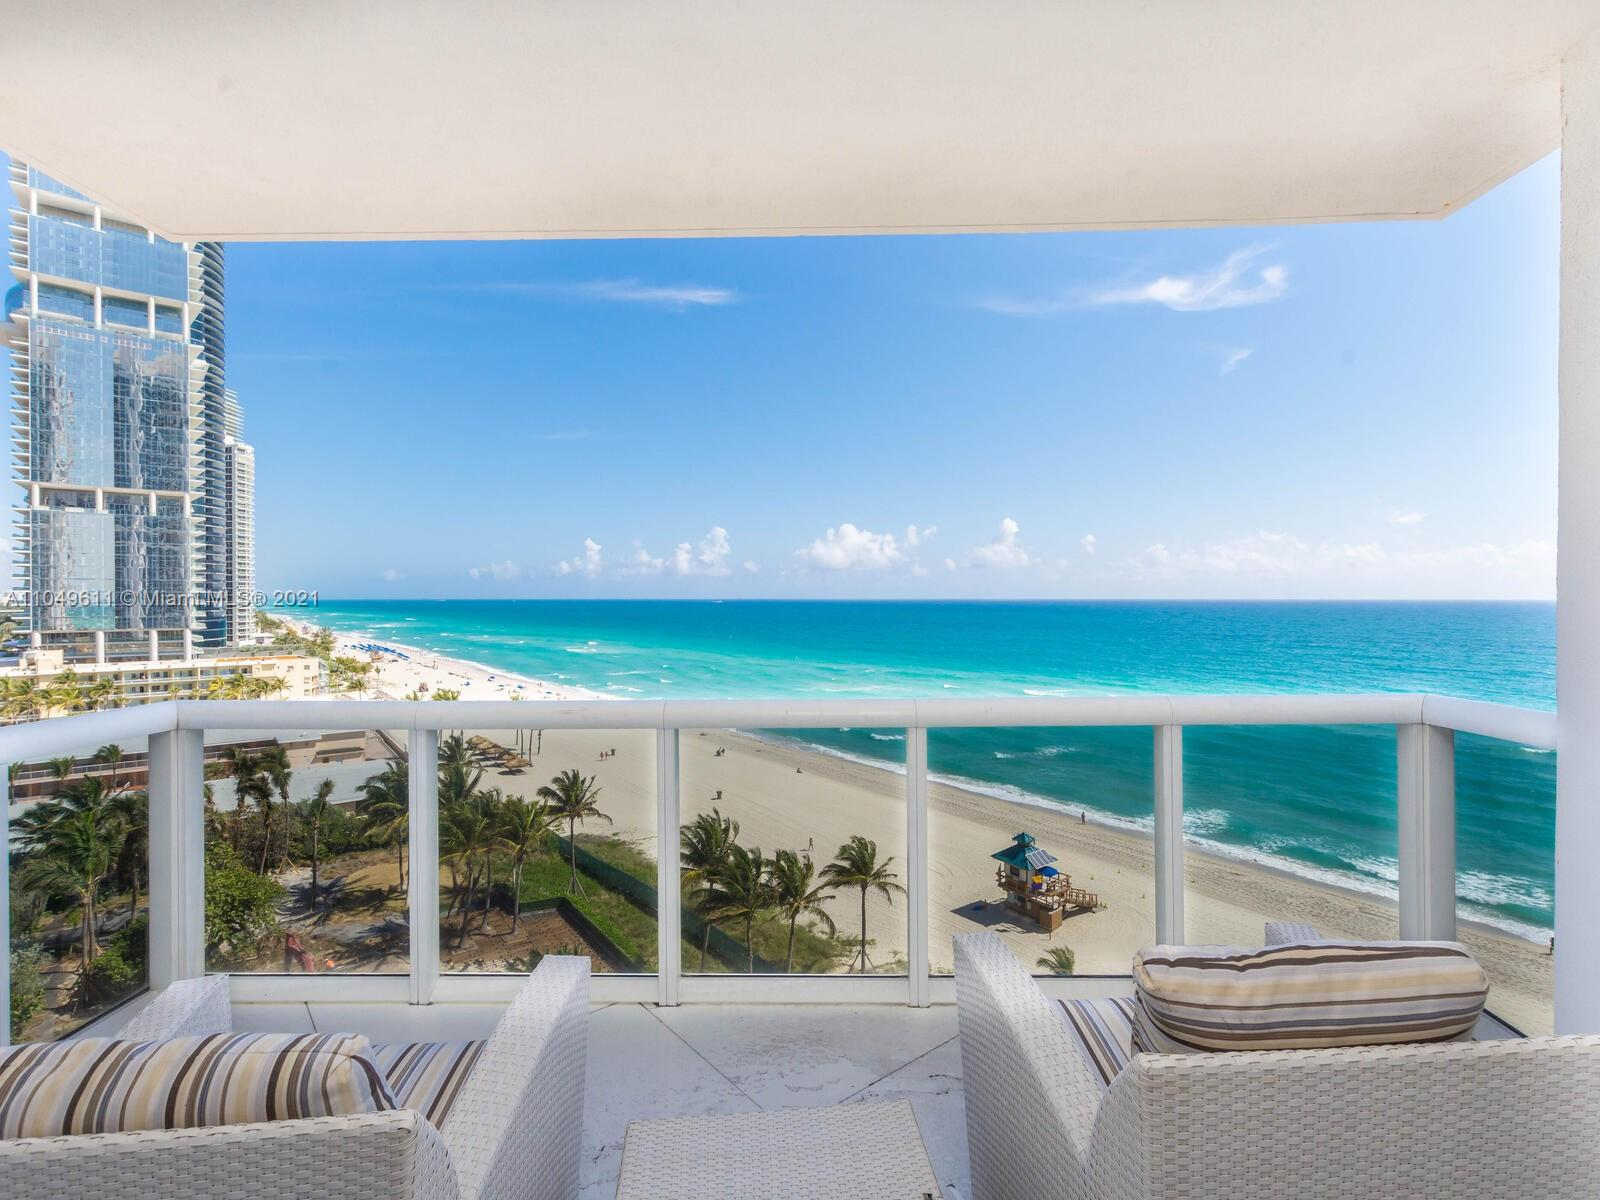 This stunning Sunny Isles Beach features a 4000 sqft of living space in five star-resort Trump Royale with 3 bed / 3.5 bath masterpiece with private elevator entry and comes exquisitely finished  with custom upgrades throughout ( furniture is negotiable). Unit features an open concept living area,Italian kitchen with sub Zero refrigerator, custom wine cooler, large walk-in closets, window treatments and expansive ocean views from every room. Enjoy Trump's 5-star resort style living with 3 on-site restaurants, 24/7 room service, concierge, beach club, 3 pools, 4 hot tubs, tennis courts, dog park, luxury spa, gym, free valet. Buyer has an option to acquire the 1 BR on the same floor - unit 1108 for $650,000 with an additional 881 sqft.